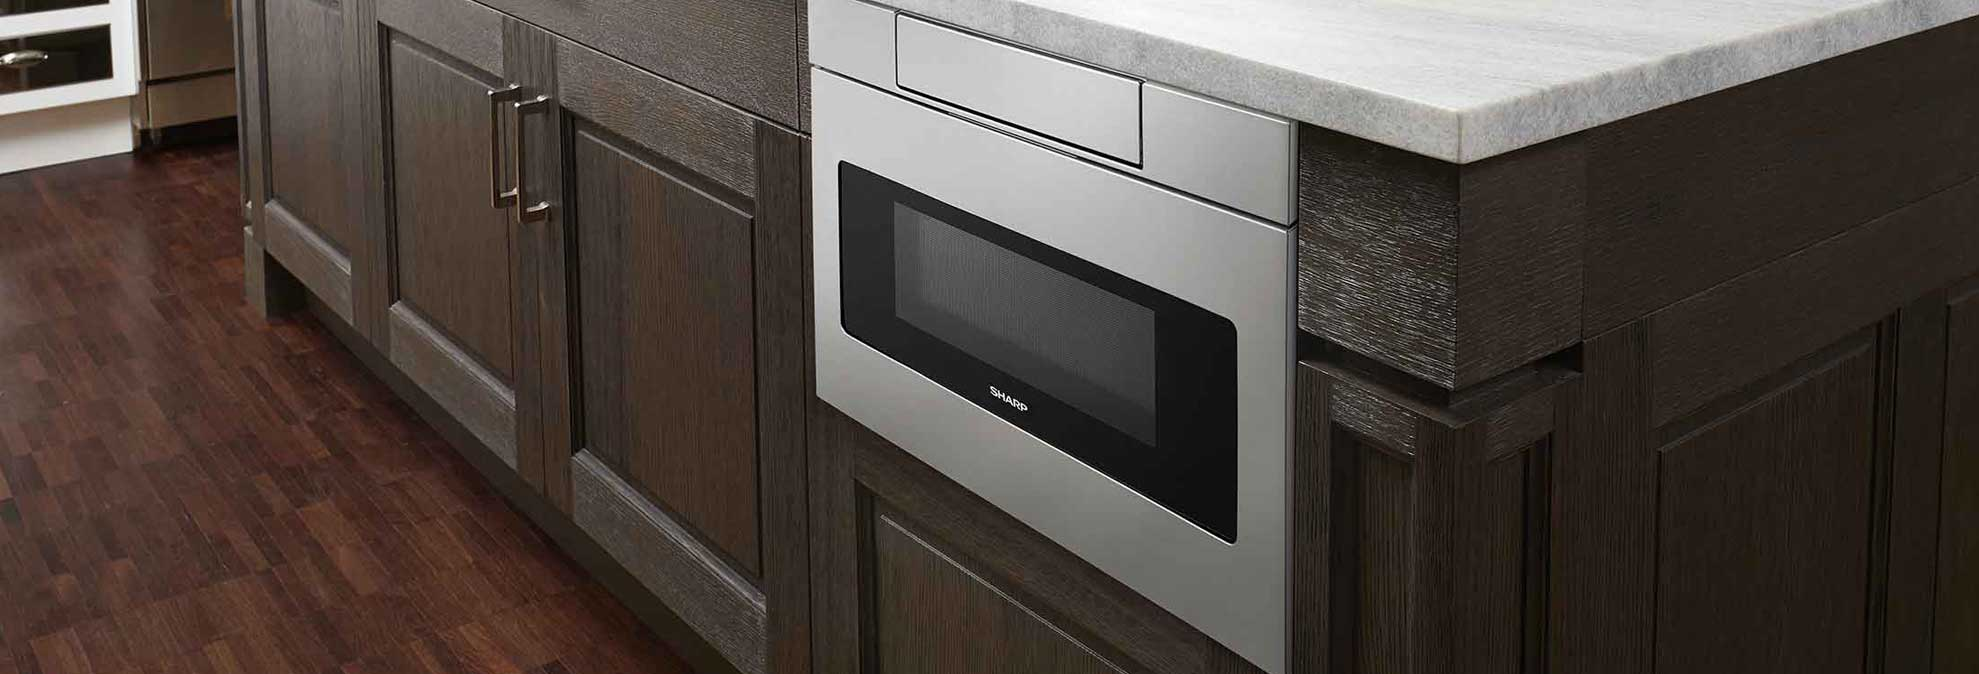 Appliance Drawers That Blend Into Your Kitchen Consumer Reports